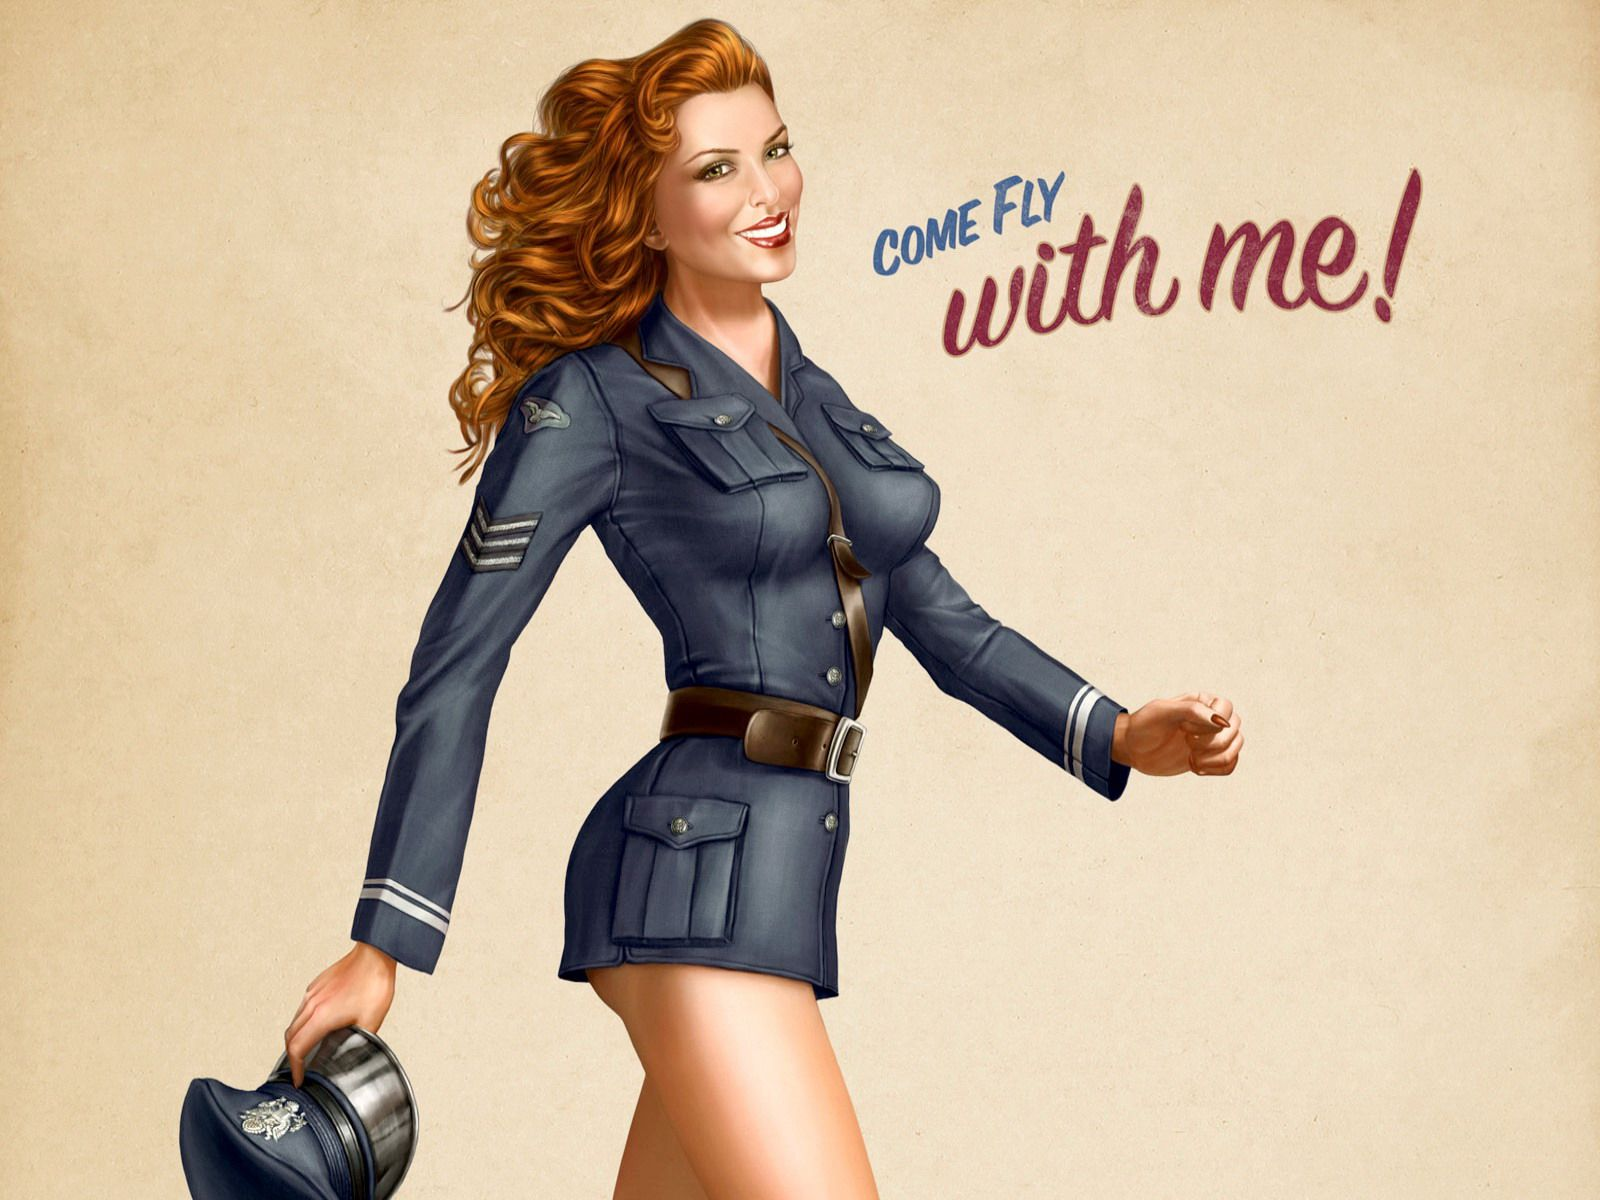 Pin By Mark On Hd Wallpapers: ... Air Force Pinup Girl Hd Wallpaper